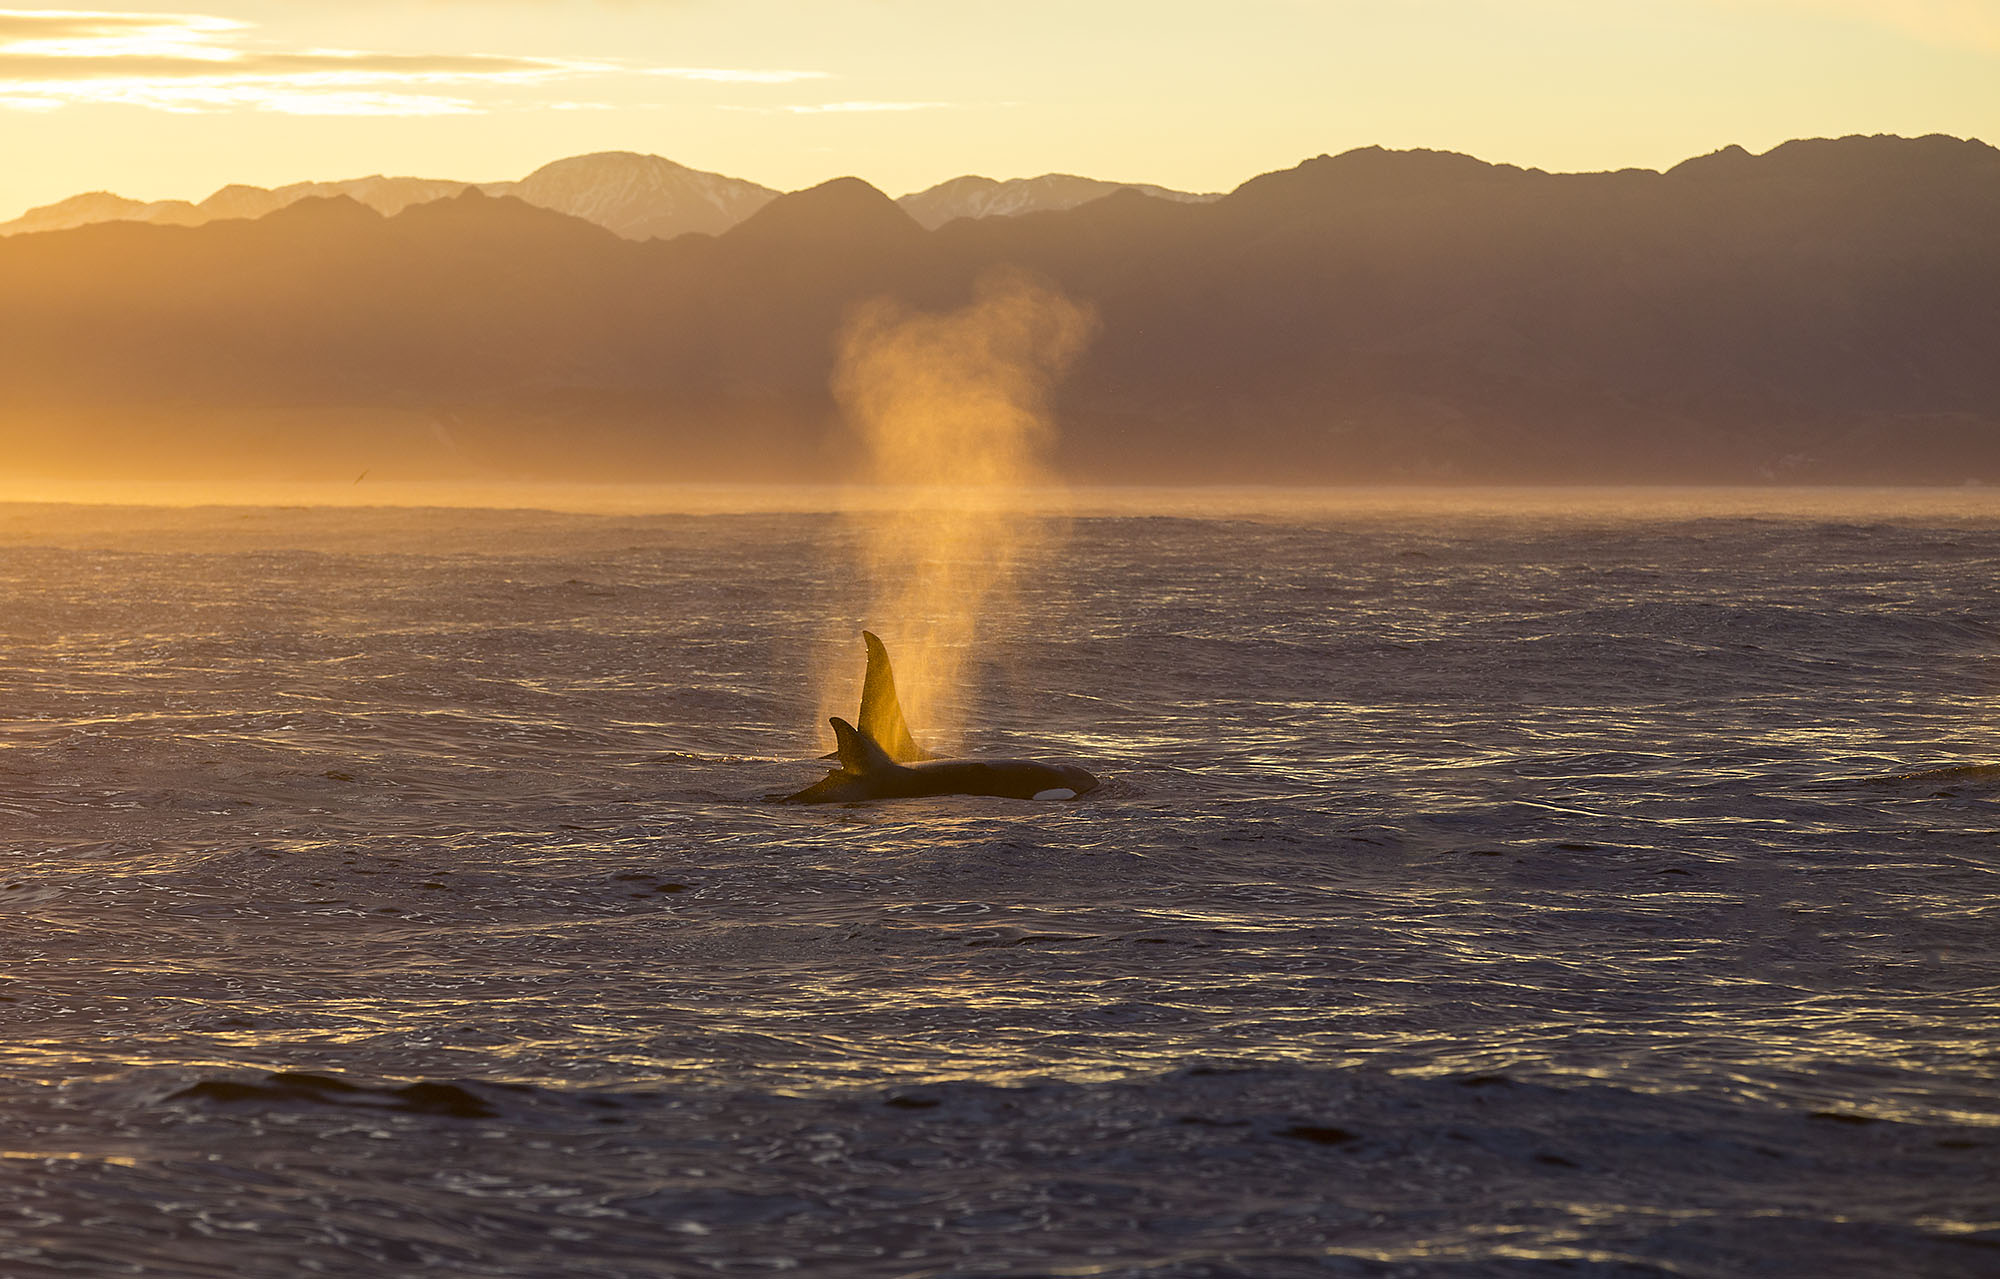 Orca whales - Frequent vistors of Kaikoura